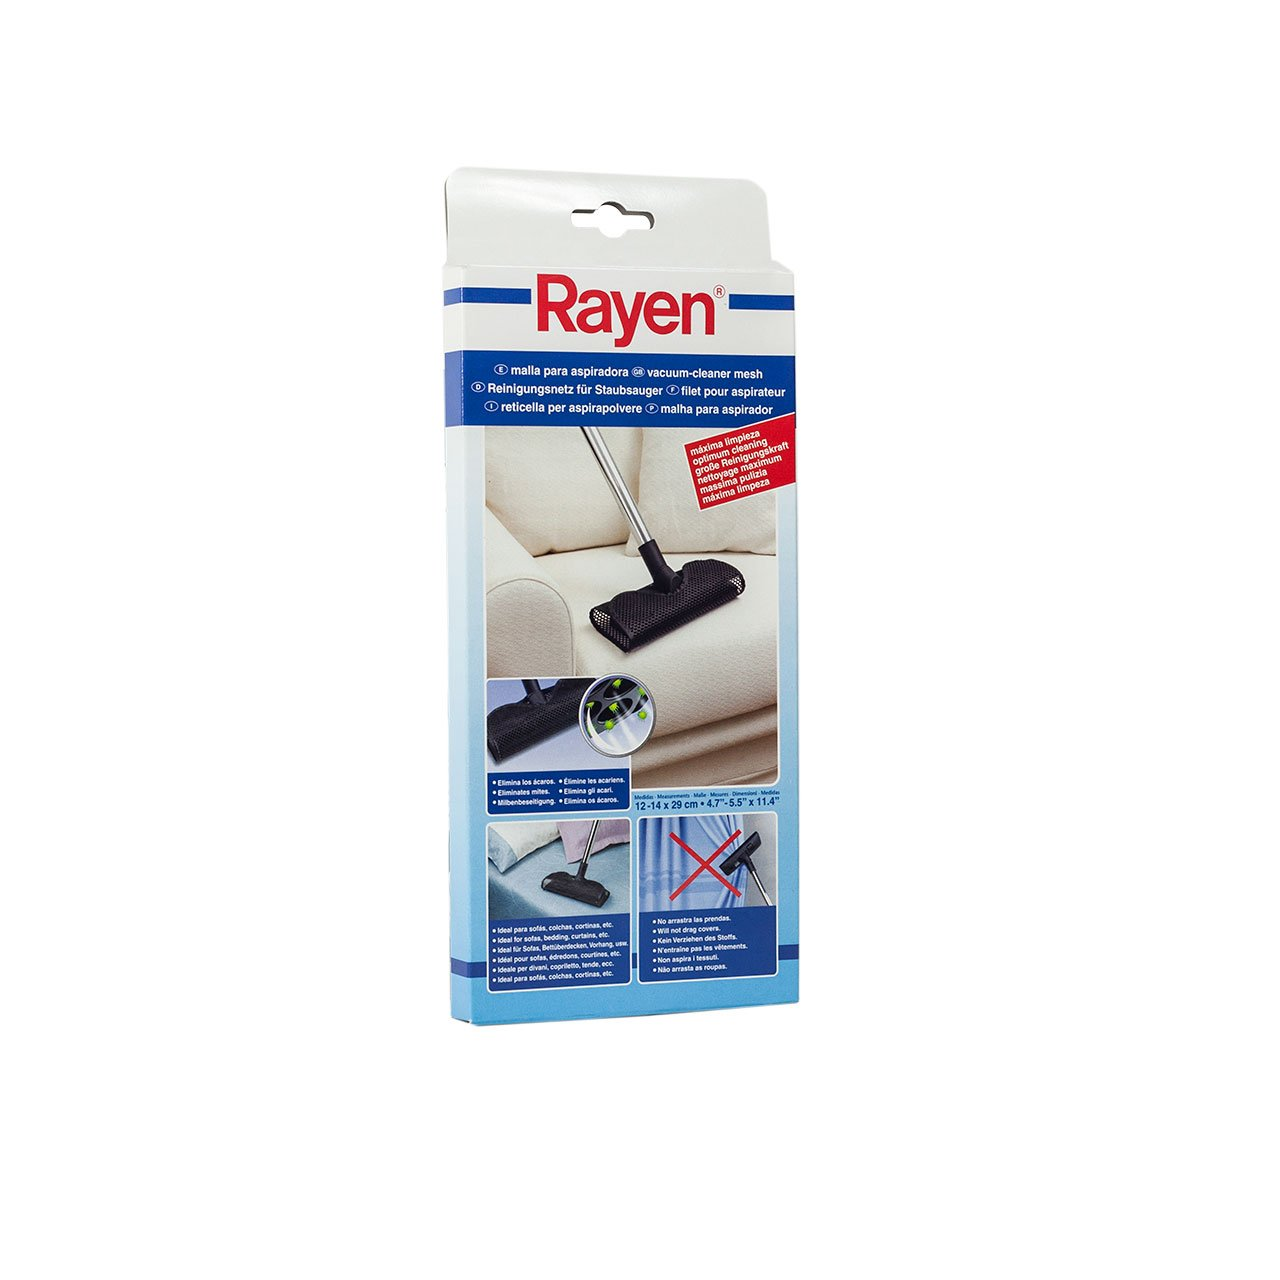 Amazon.com - RAYEN 6039 Vacuum Cleaner Black 12 to 14 x 29 cm -